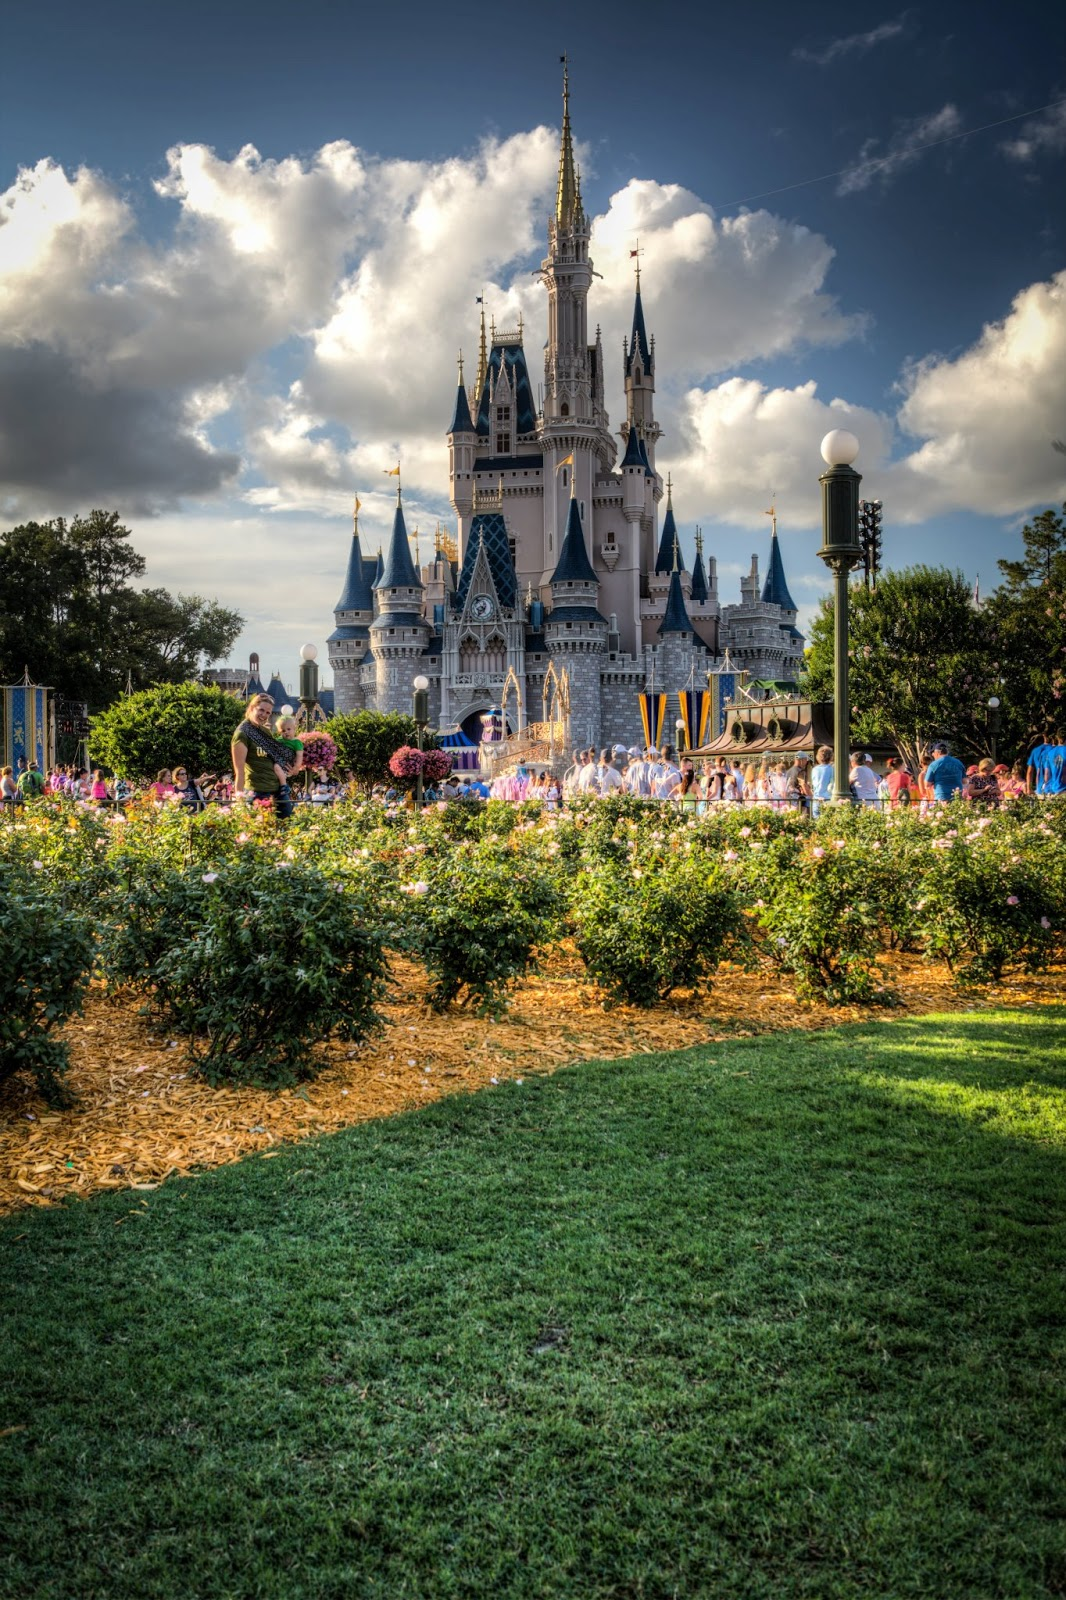 what motivates disney to set up parks abroad How can i set up a mickey mouse or character phone call for my granddaughter before our trip to walt disney world greetings and welcome to the disney parks moms panel, kathleen, how excited you must be about visiting the most magical place on earth with your precious granddaughter.